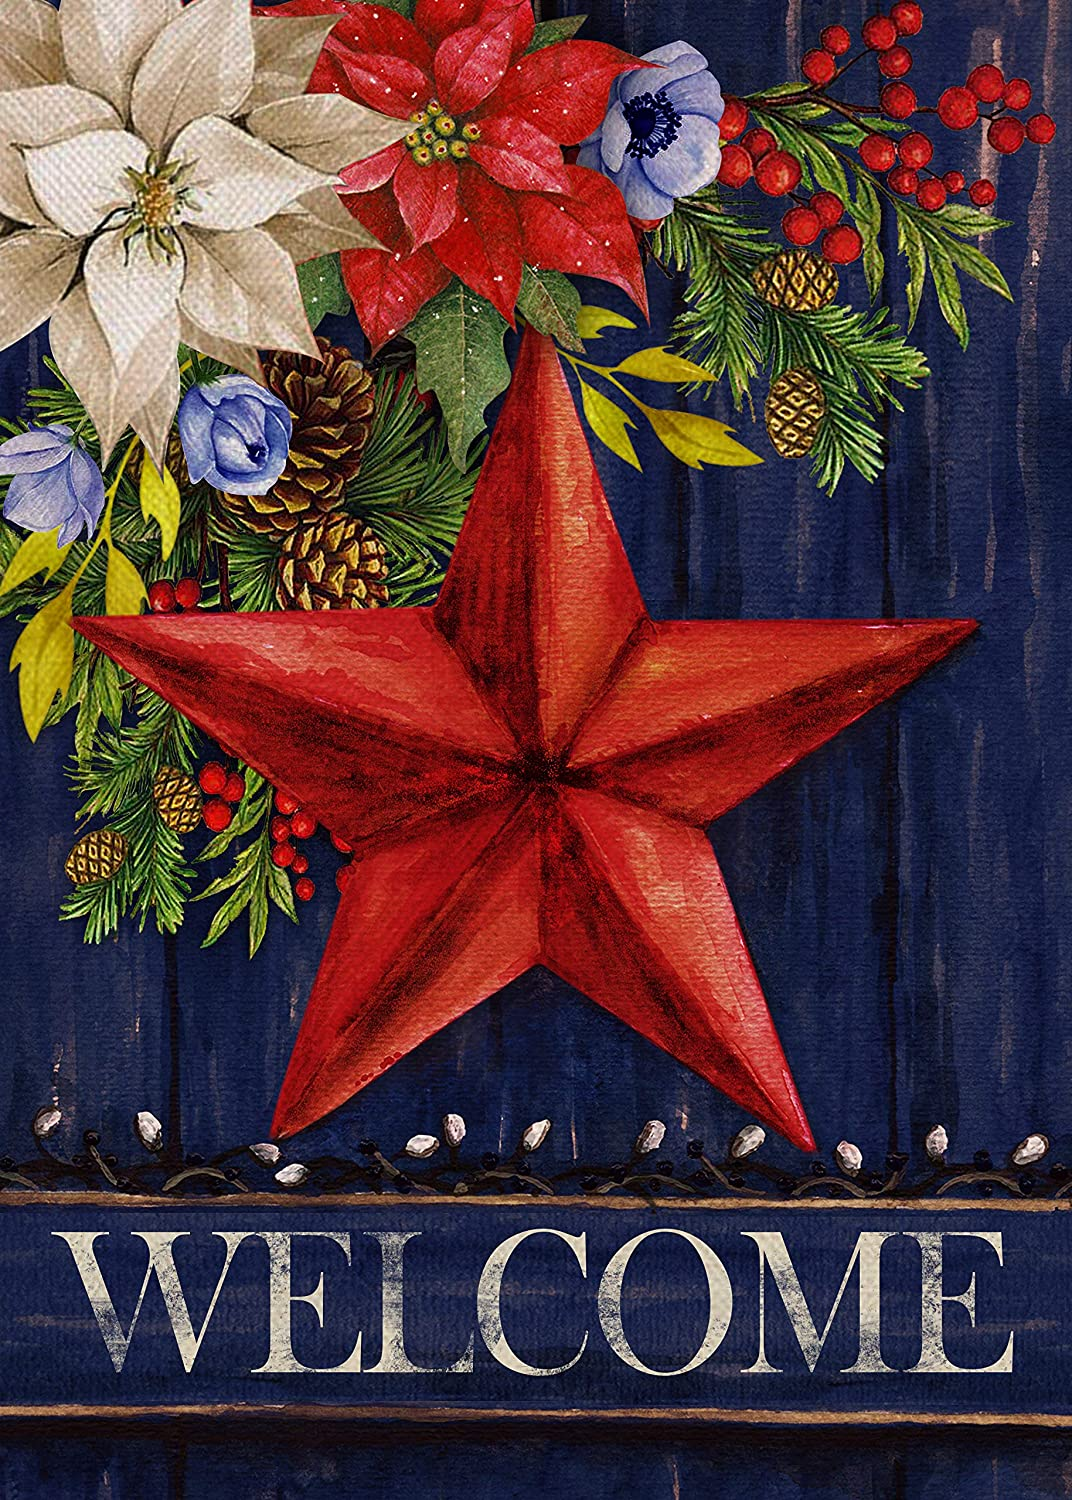 Furiaz Barn Star Christmas Garden Flag, Xmas Flower Home Decorative House Yard Small Welcome Flag Country Primitive Decor Double Sided, Fall Winter Outdoor Decorations Seasonal Outside Flag 12 x 18